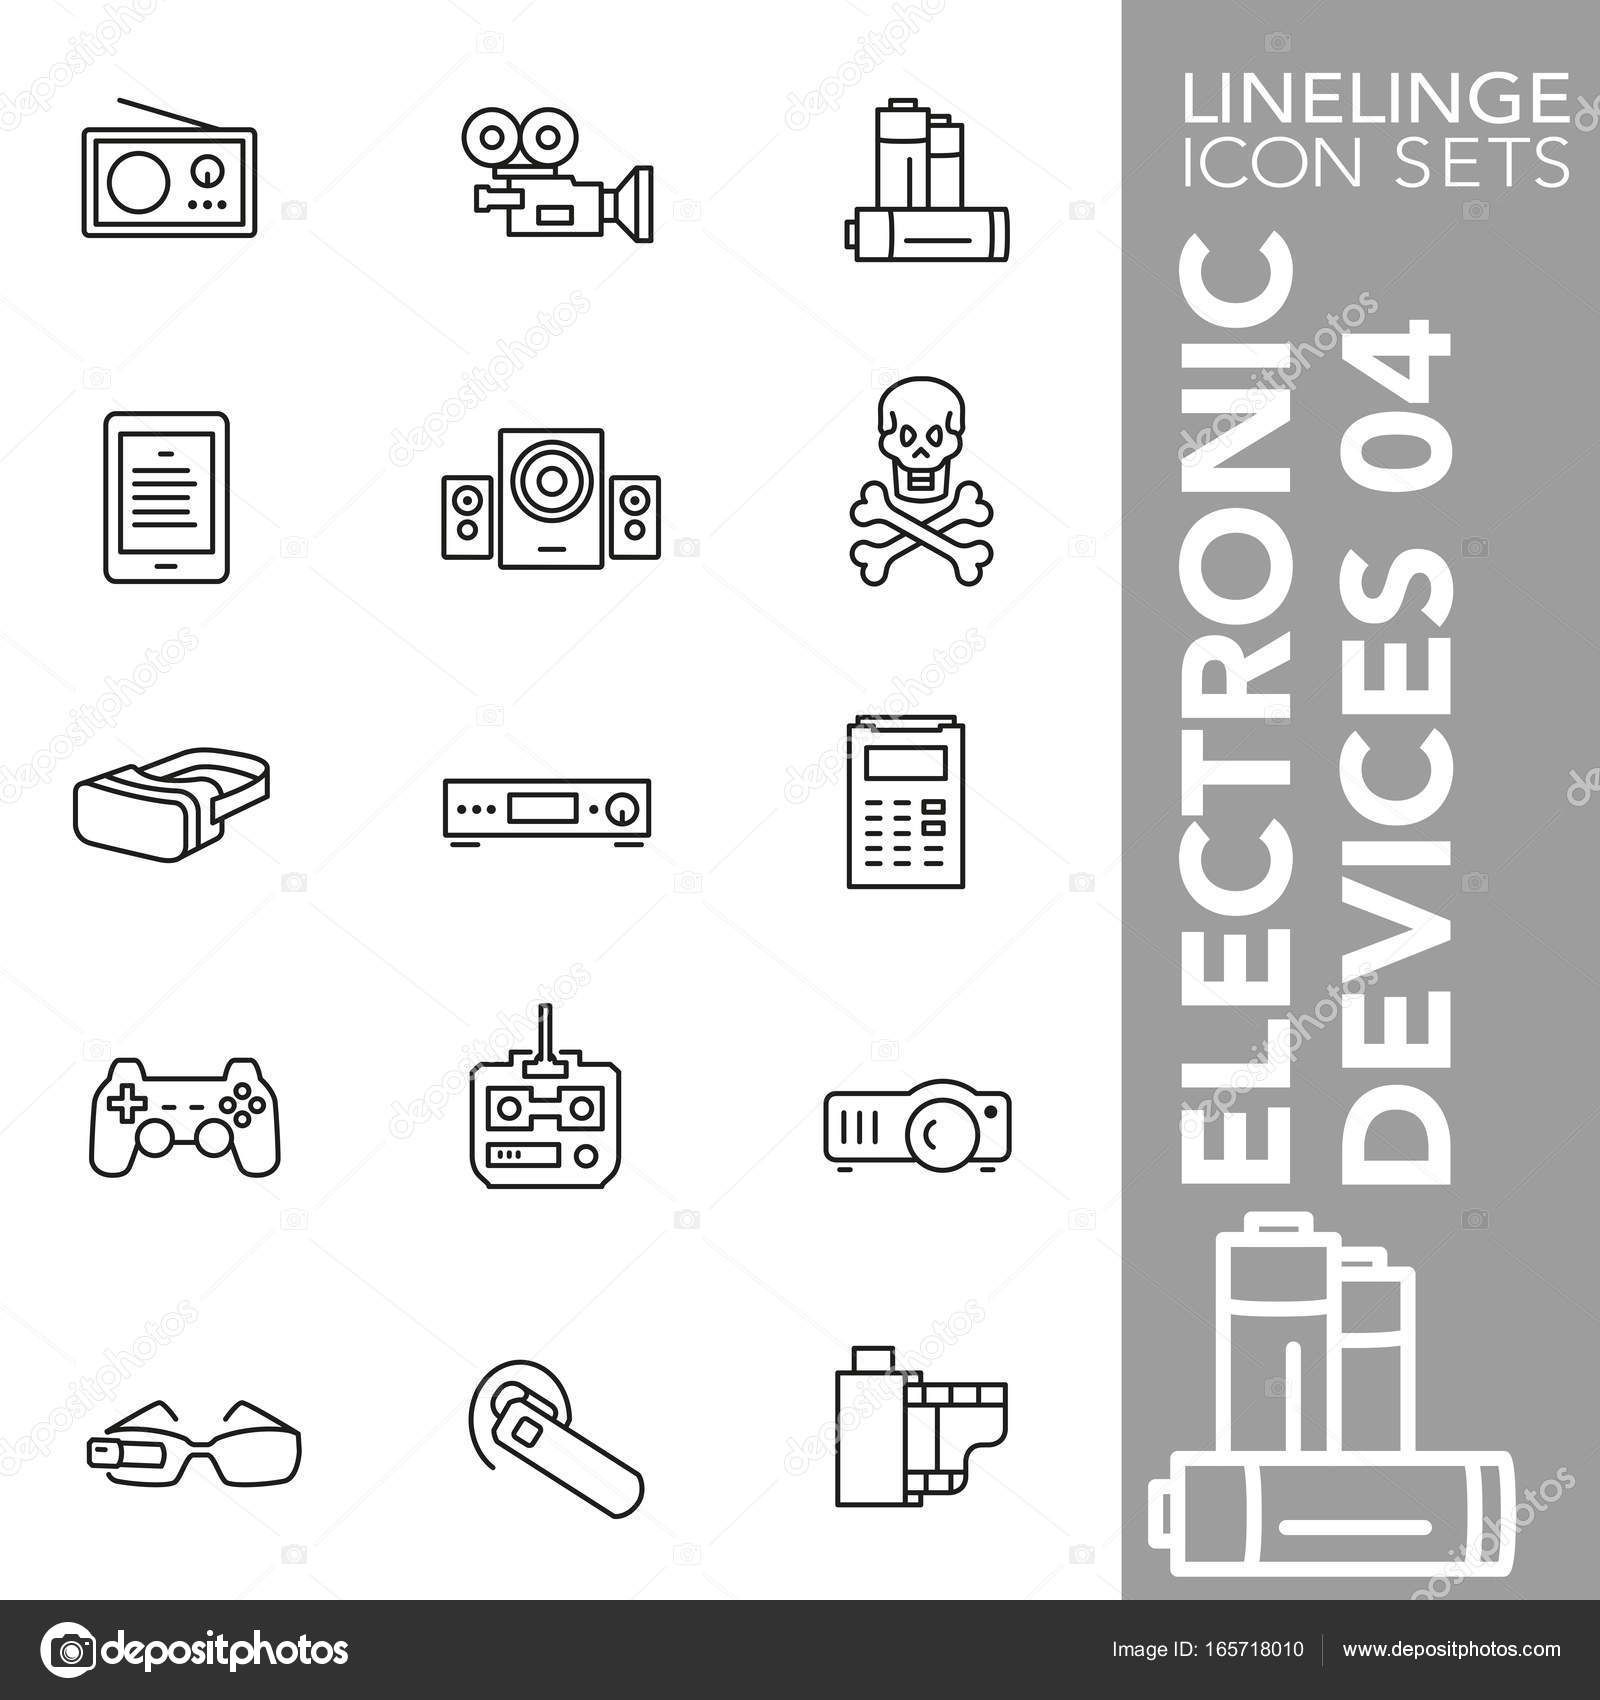 Premium stroke icon set of electronics, technology, technical ...